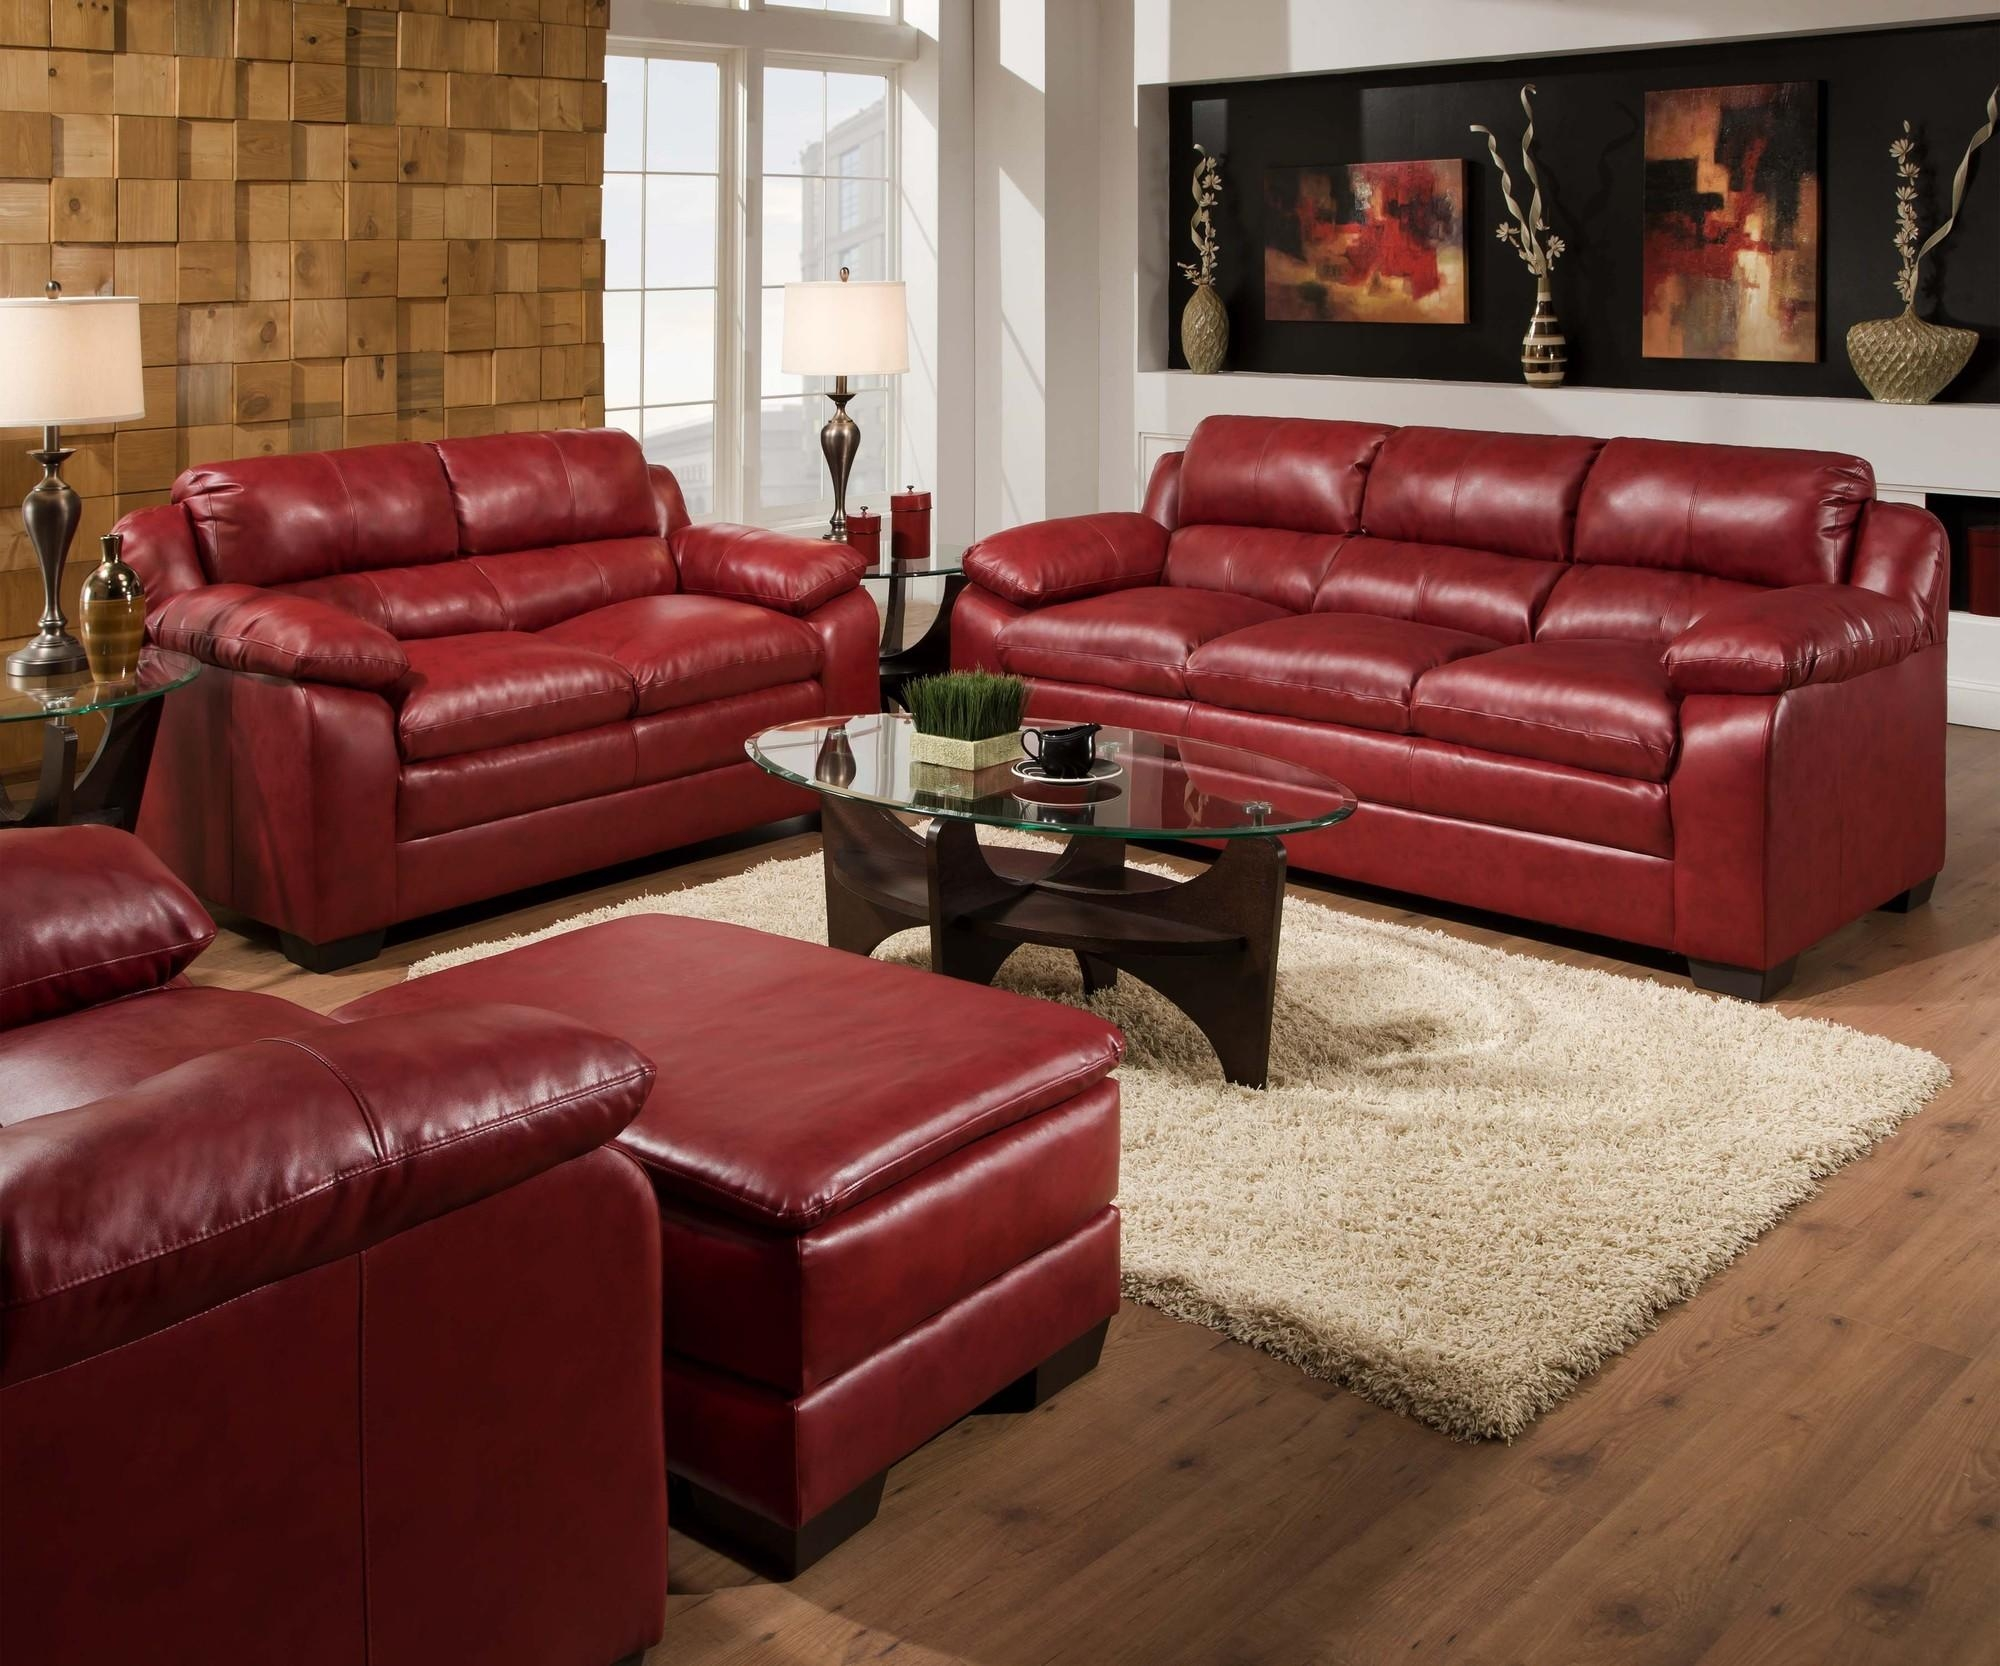 simmons sofa and loveseat dispose 20 photos leather sofas loveseats ideas